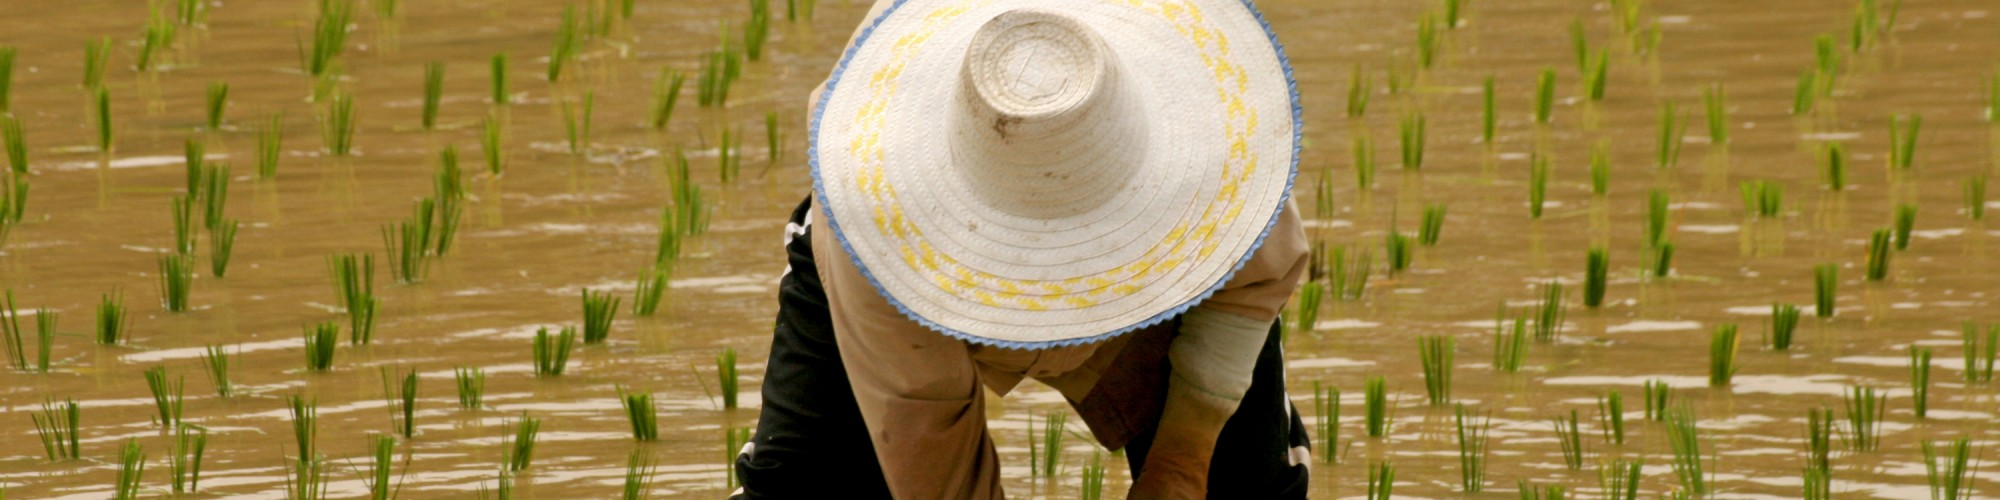 thai_rice_farmer[1]